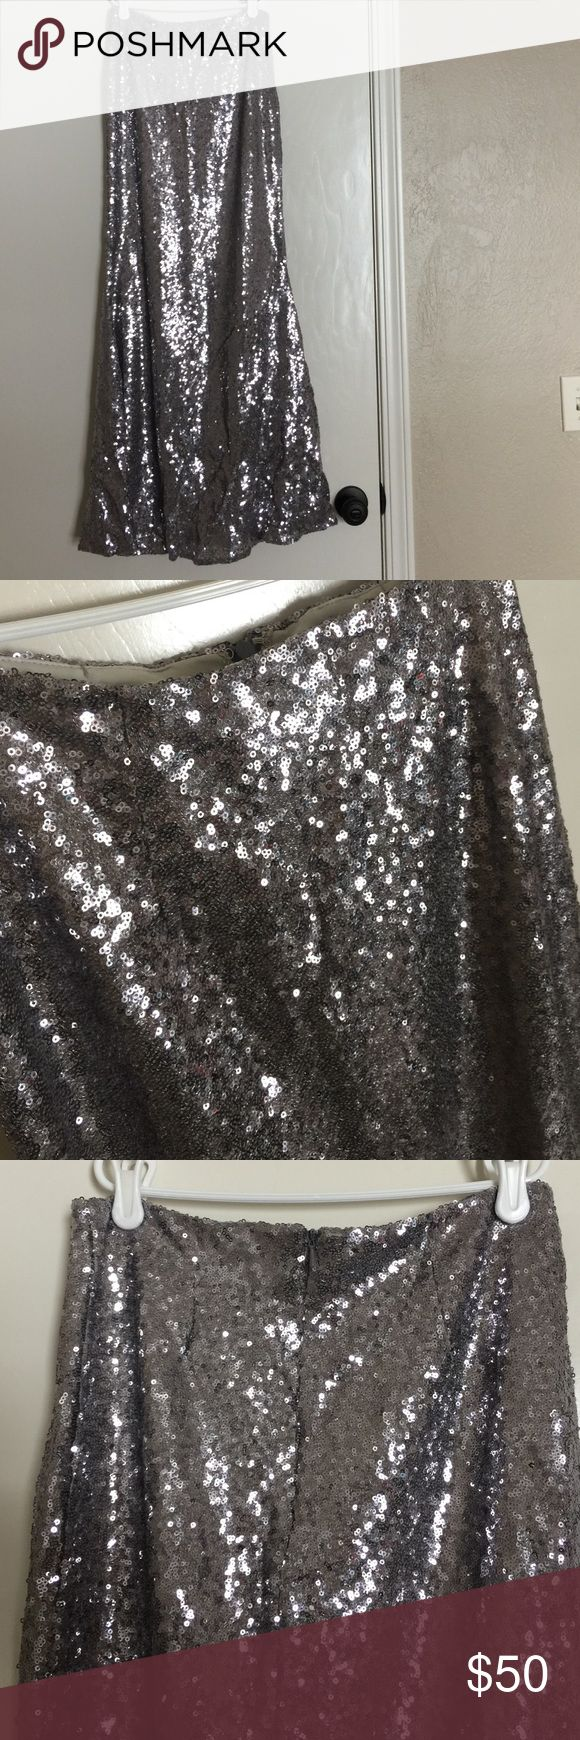 Lulu's - Silver Sequined Maxi Skirt - Sz: M Lulu's - Silver Sequined Maxi Skirt - Sz: M - worn one time - great condition - zip up the back - mermaid-esque at bottom - such a phenomal price for your wardrobe! Lulu's Skirts Maxi